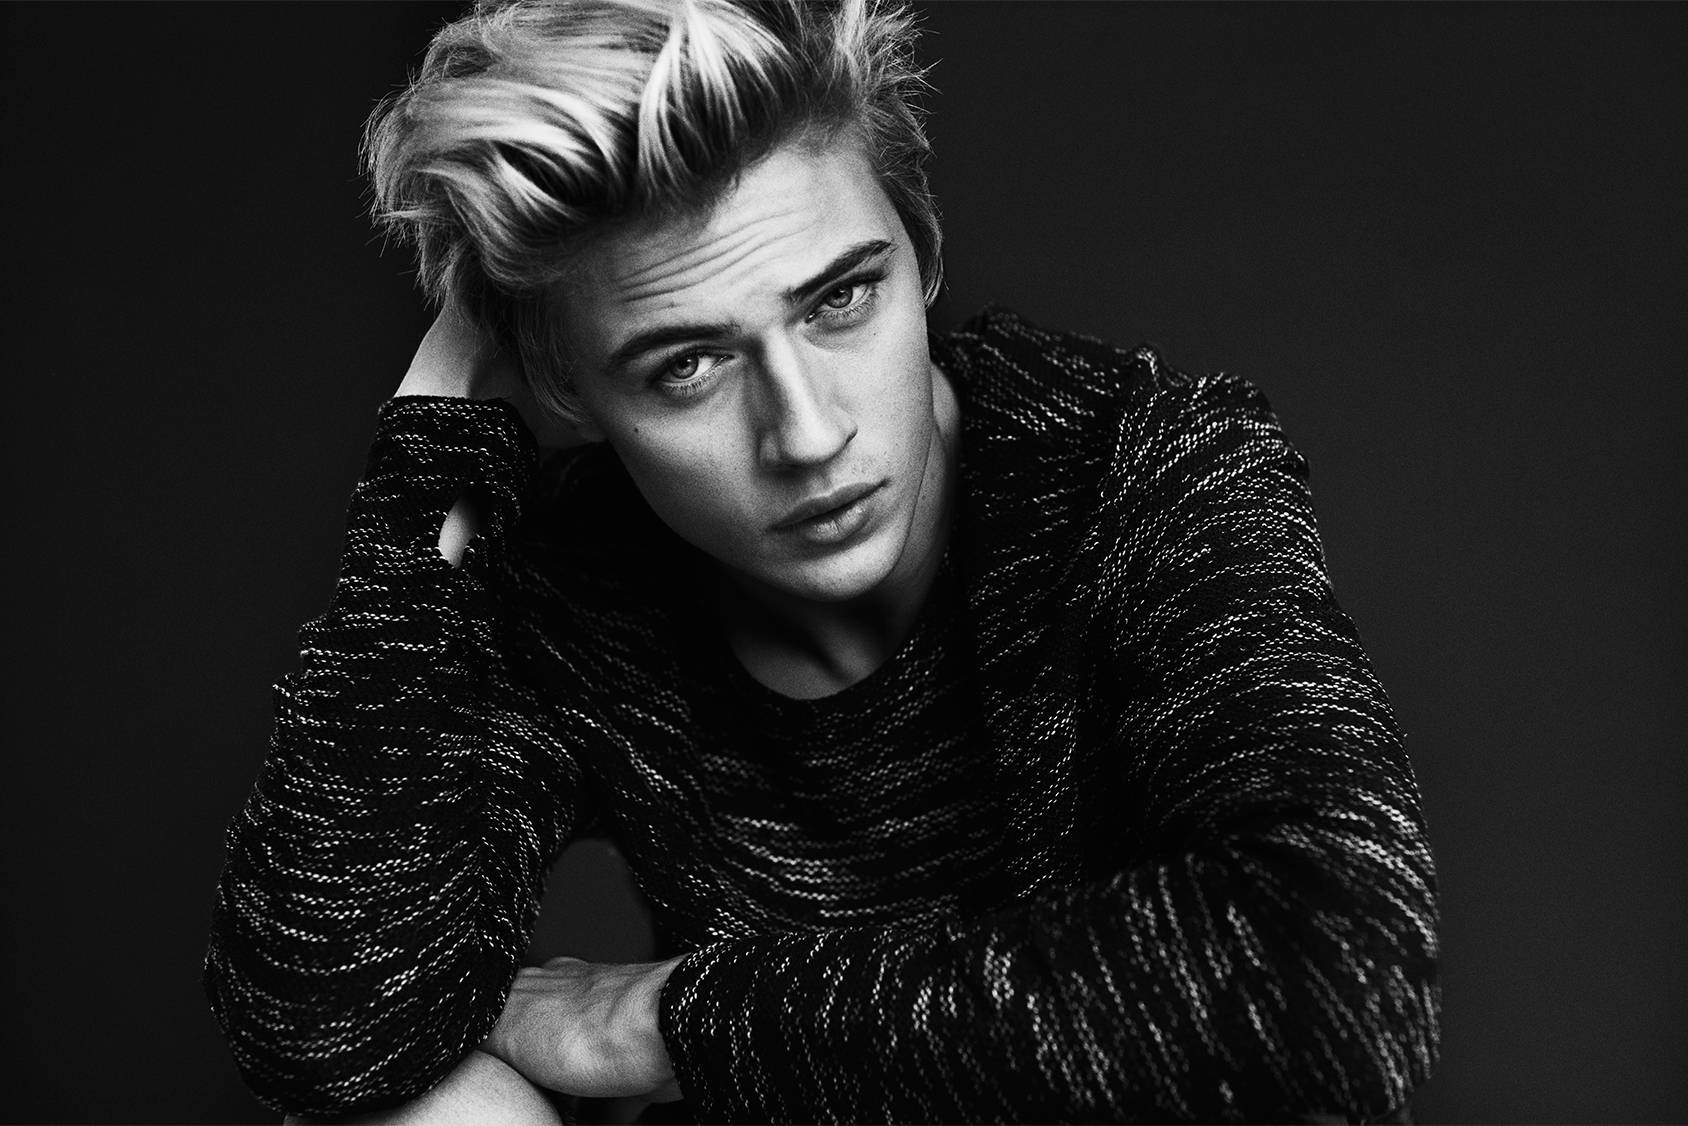 Lucky Blue Smith Wallpapers High Quality Download 1688x1126